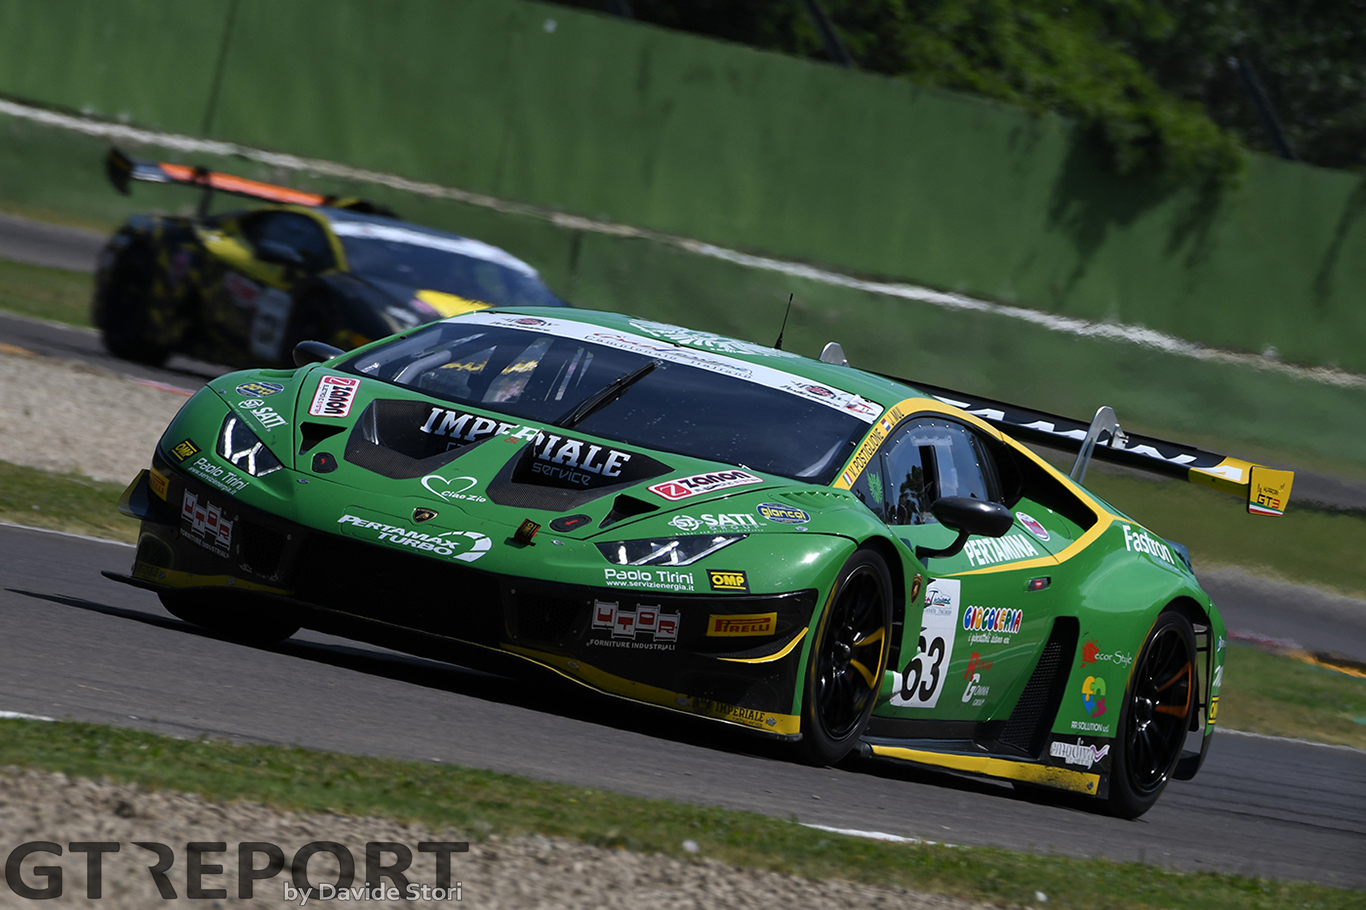 Italian GT Imola report and gallery